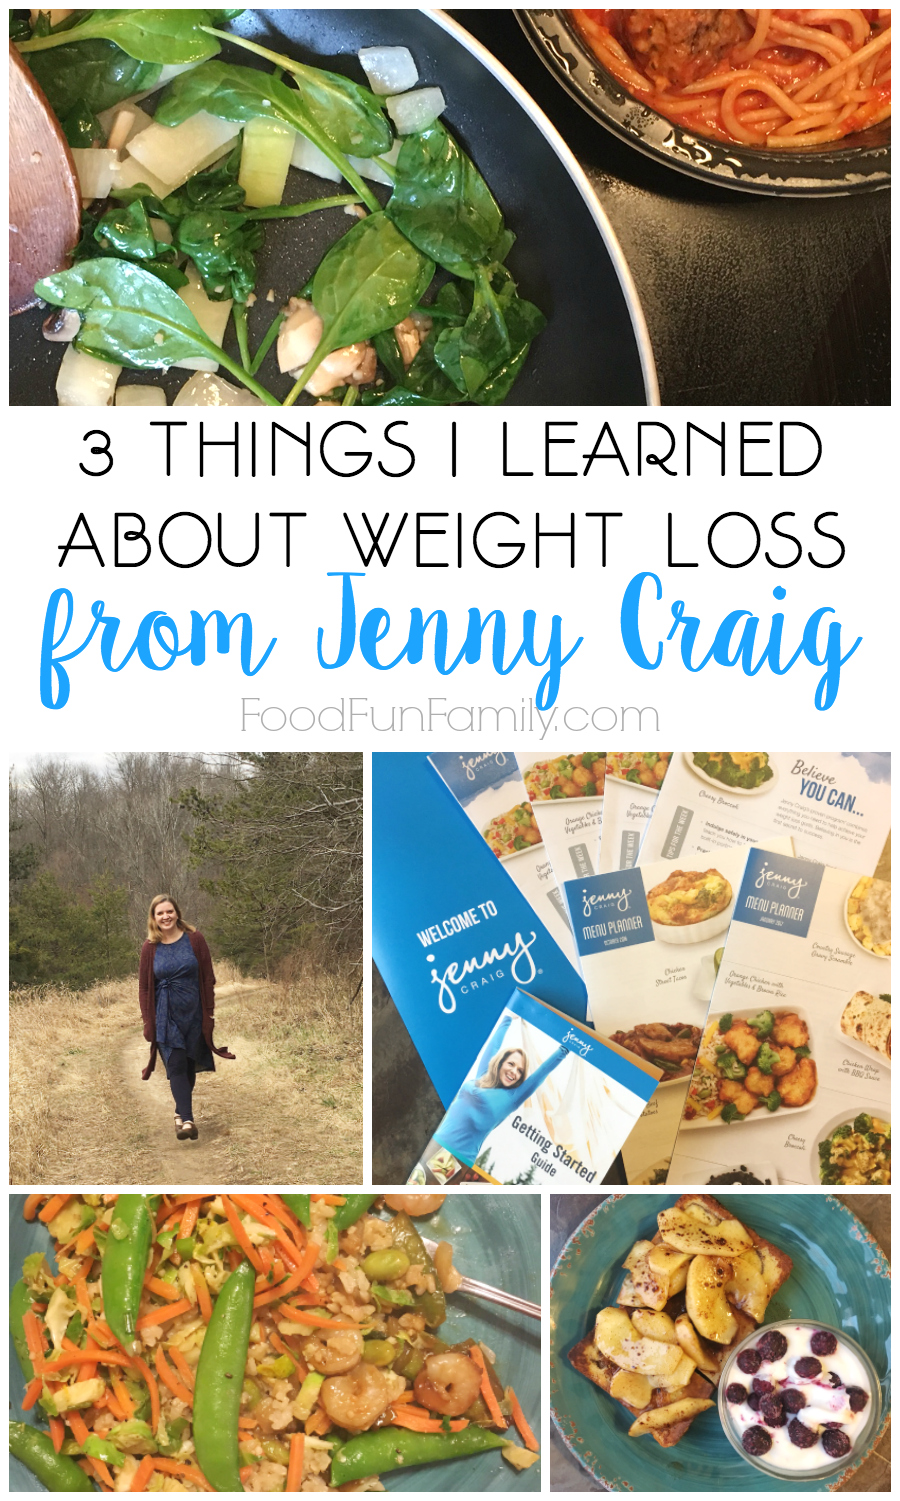 3 things I learned about weight loss from Jenny Craig